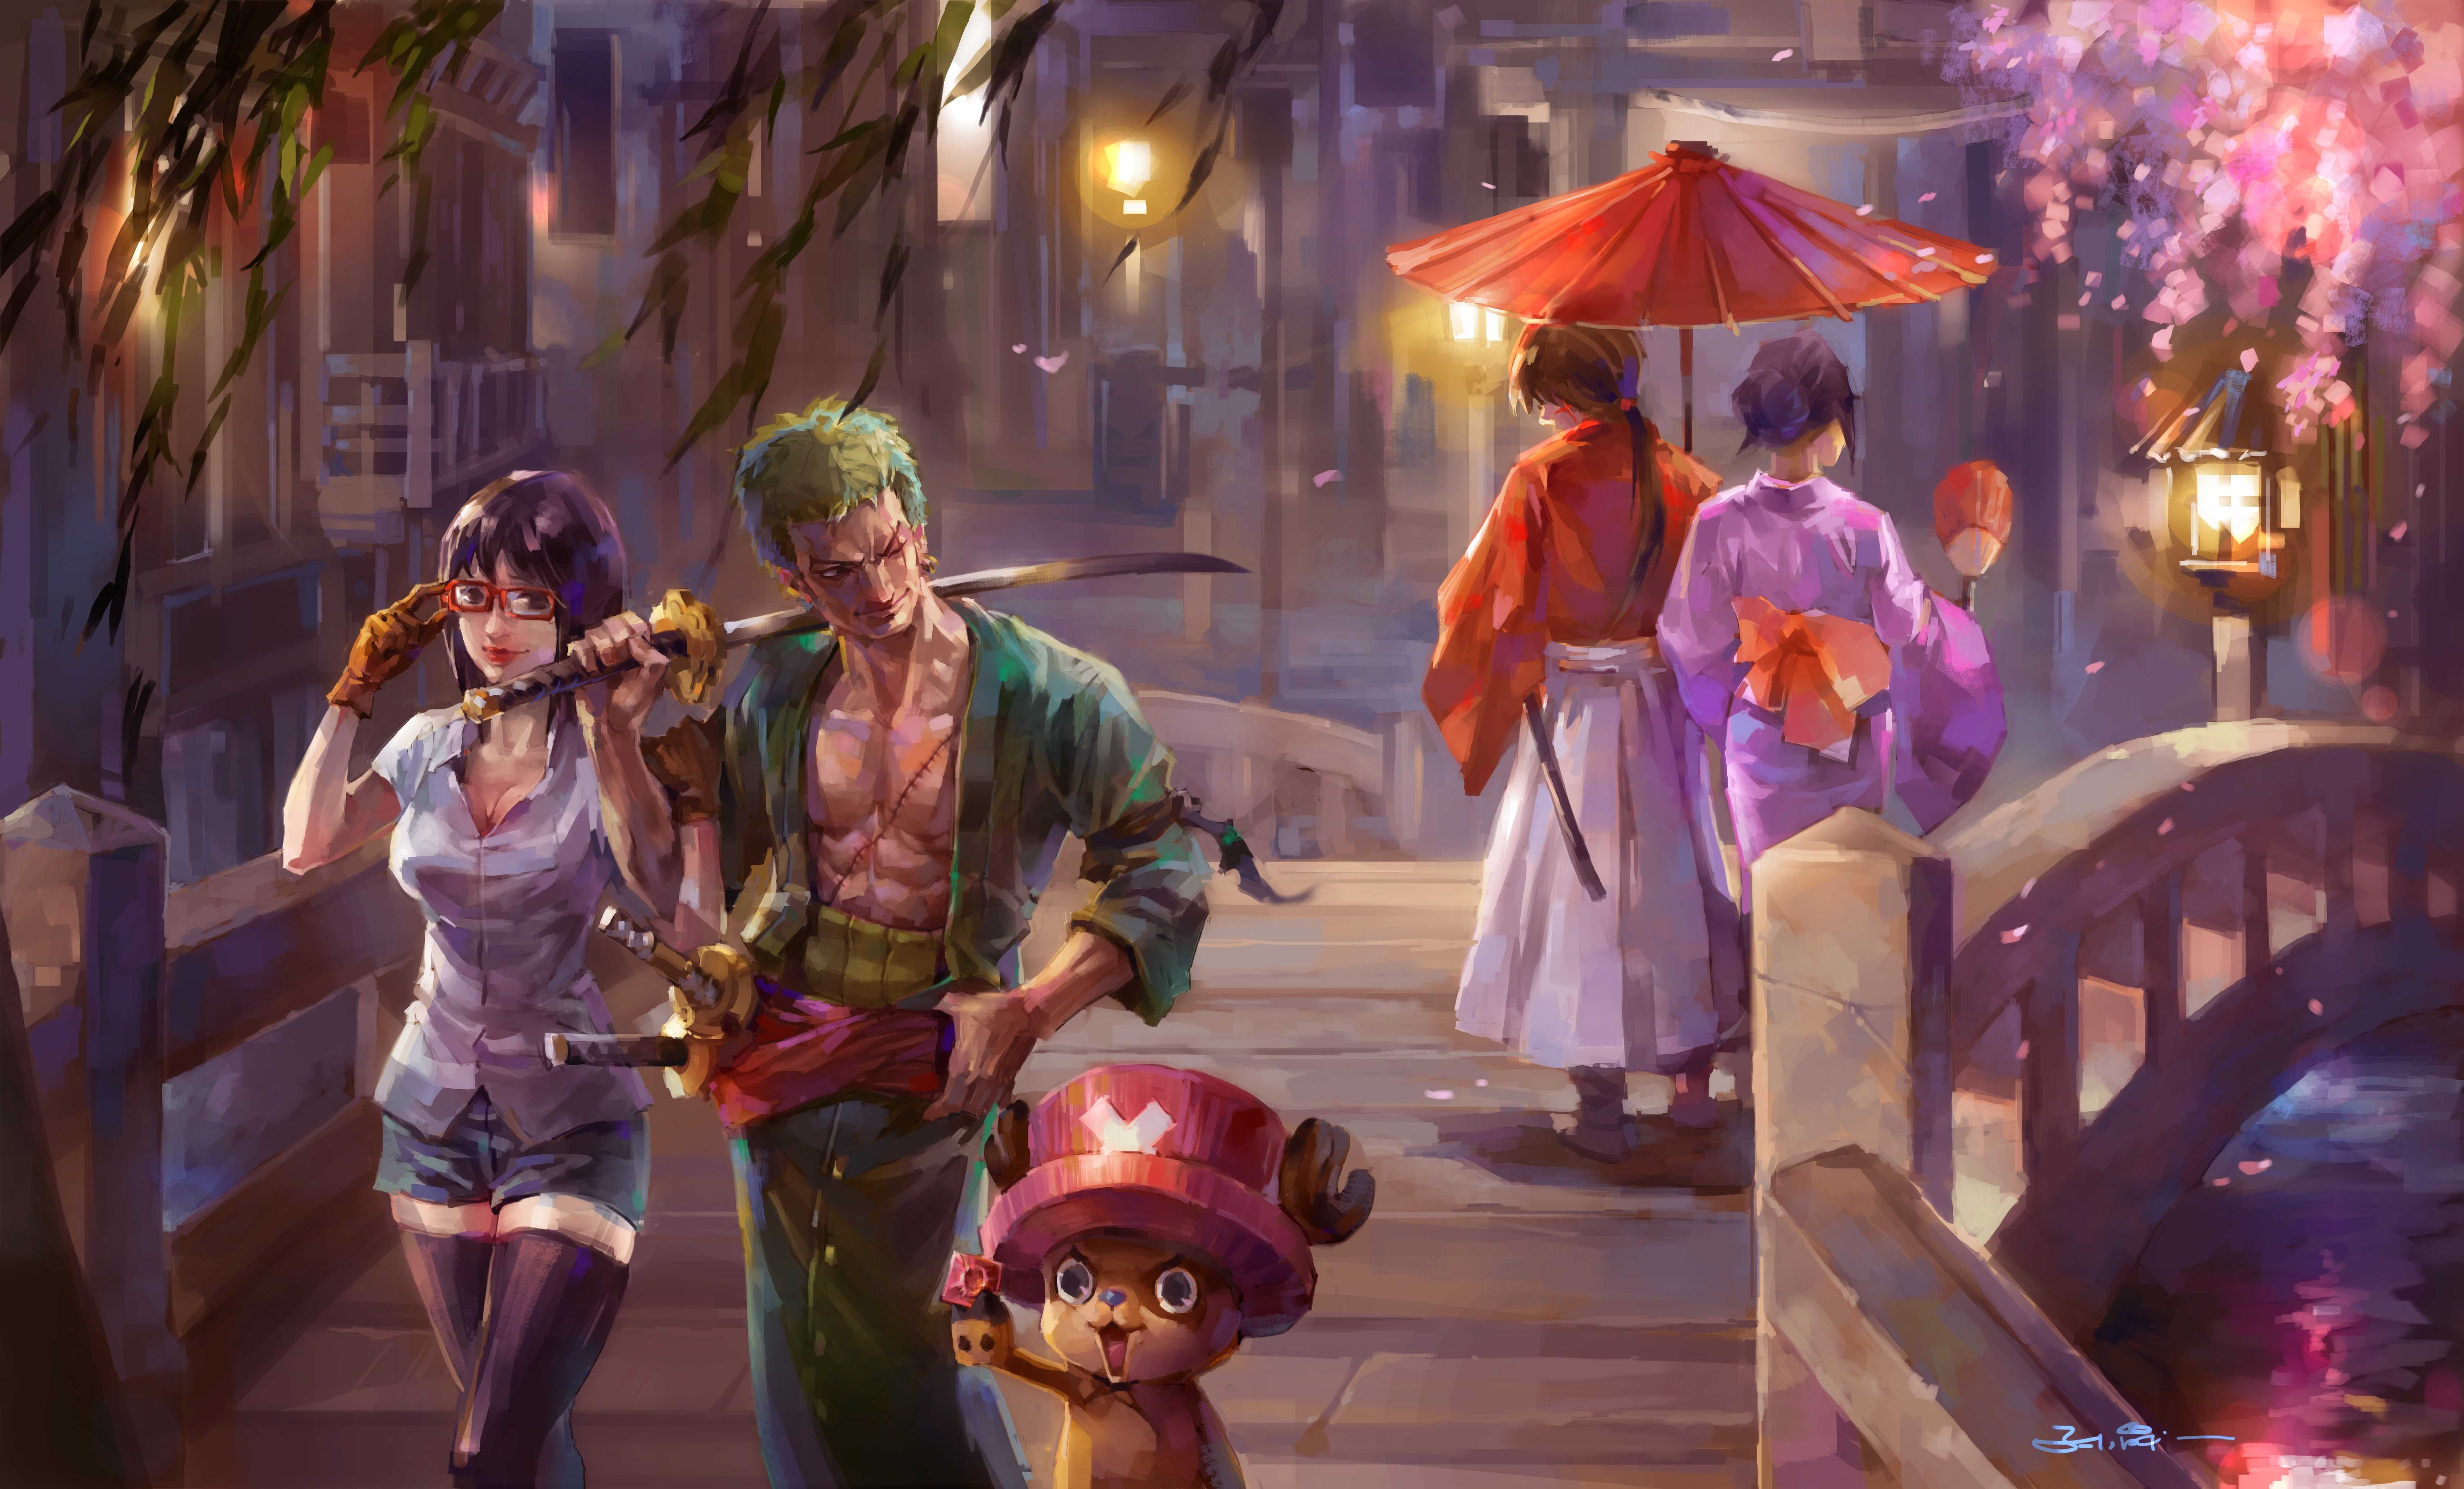 5120x2880 One Piece Painting 5k 5k HD 4k Wallpapers